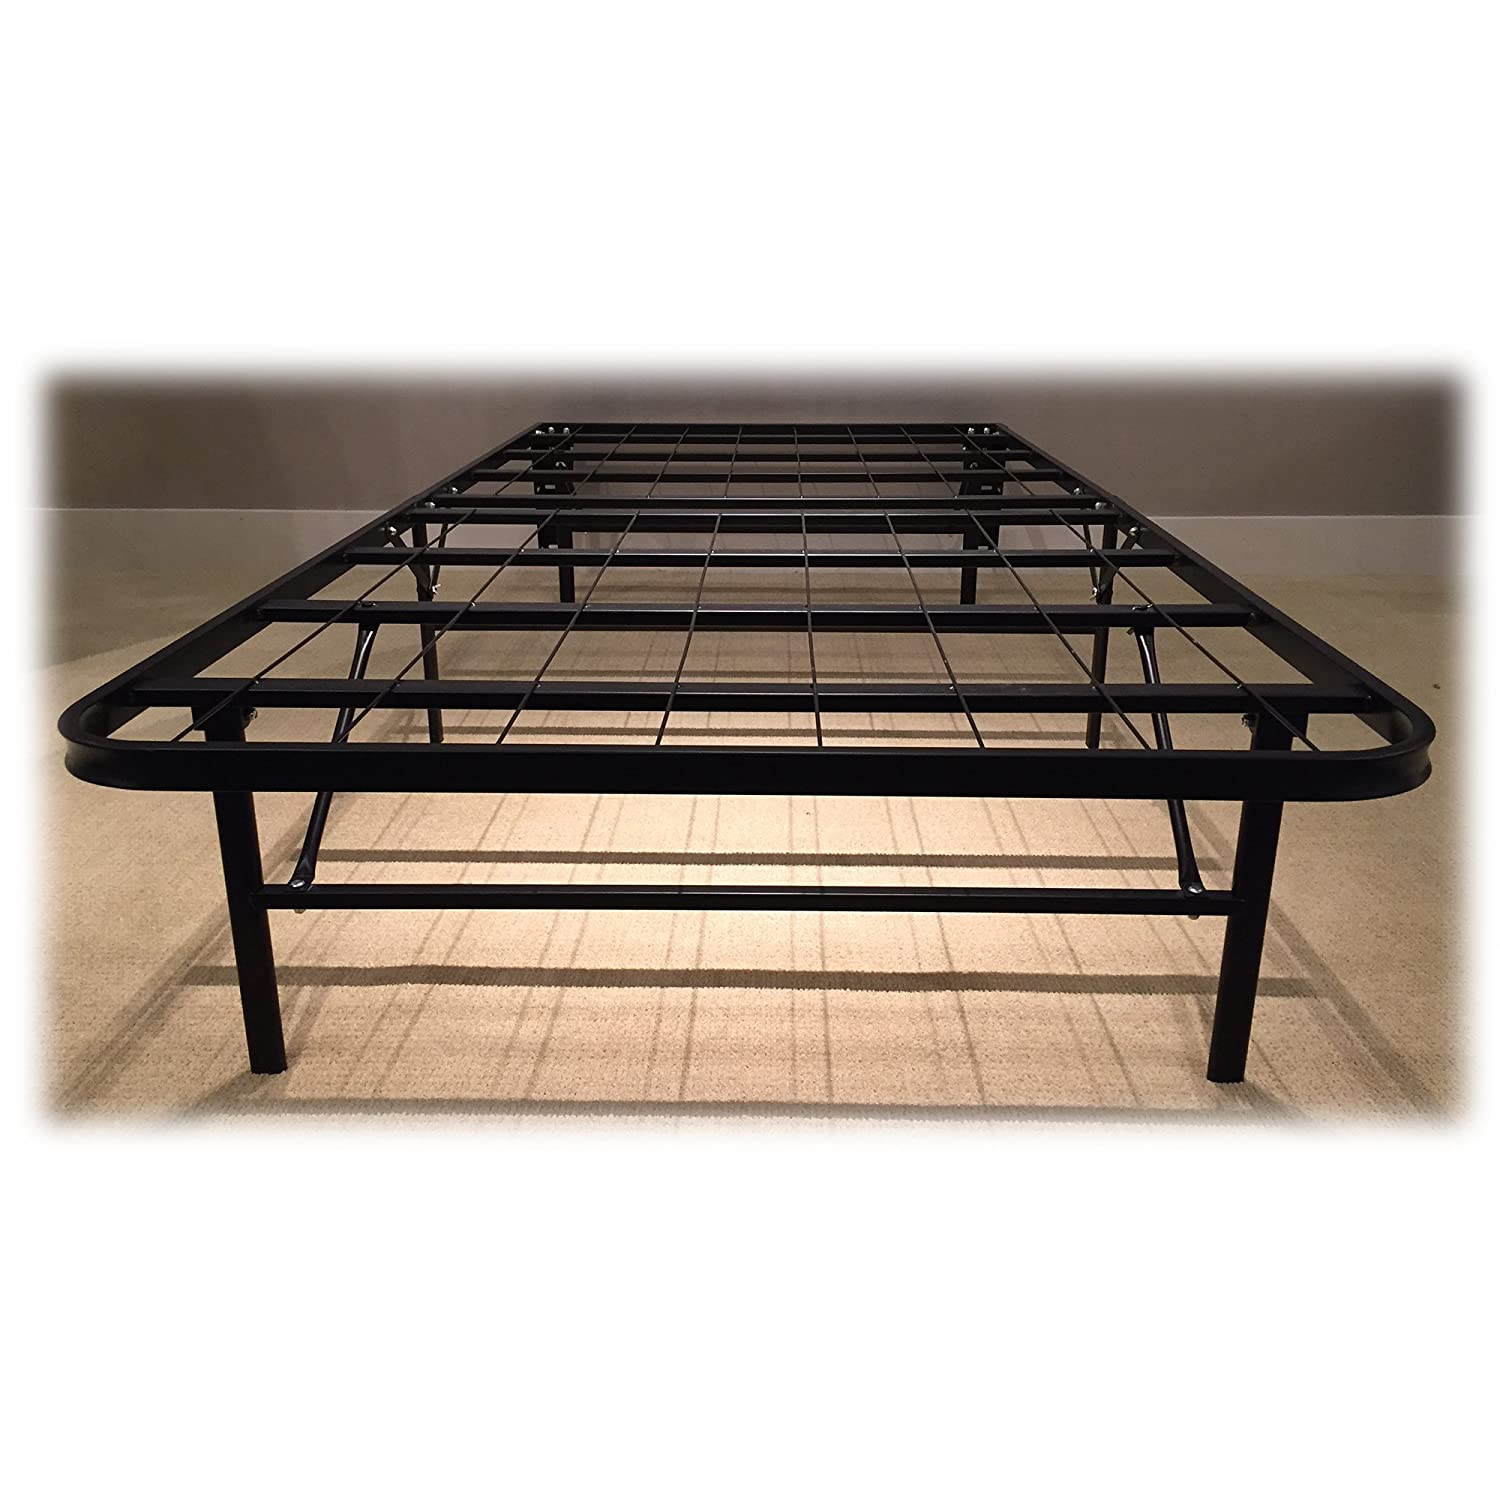 sleep eurobaseqn specialty stores live frame boyd euro bed base well platform